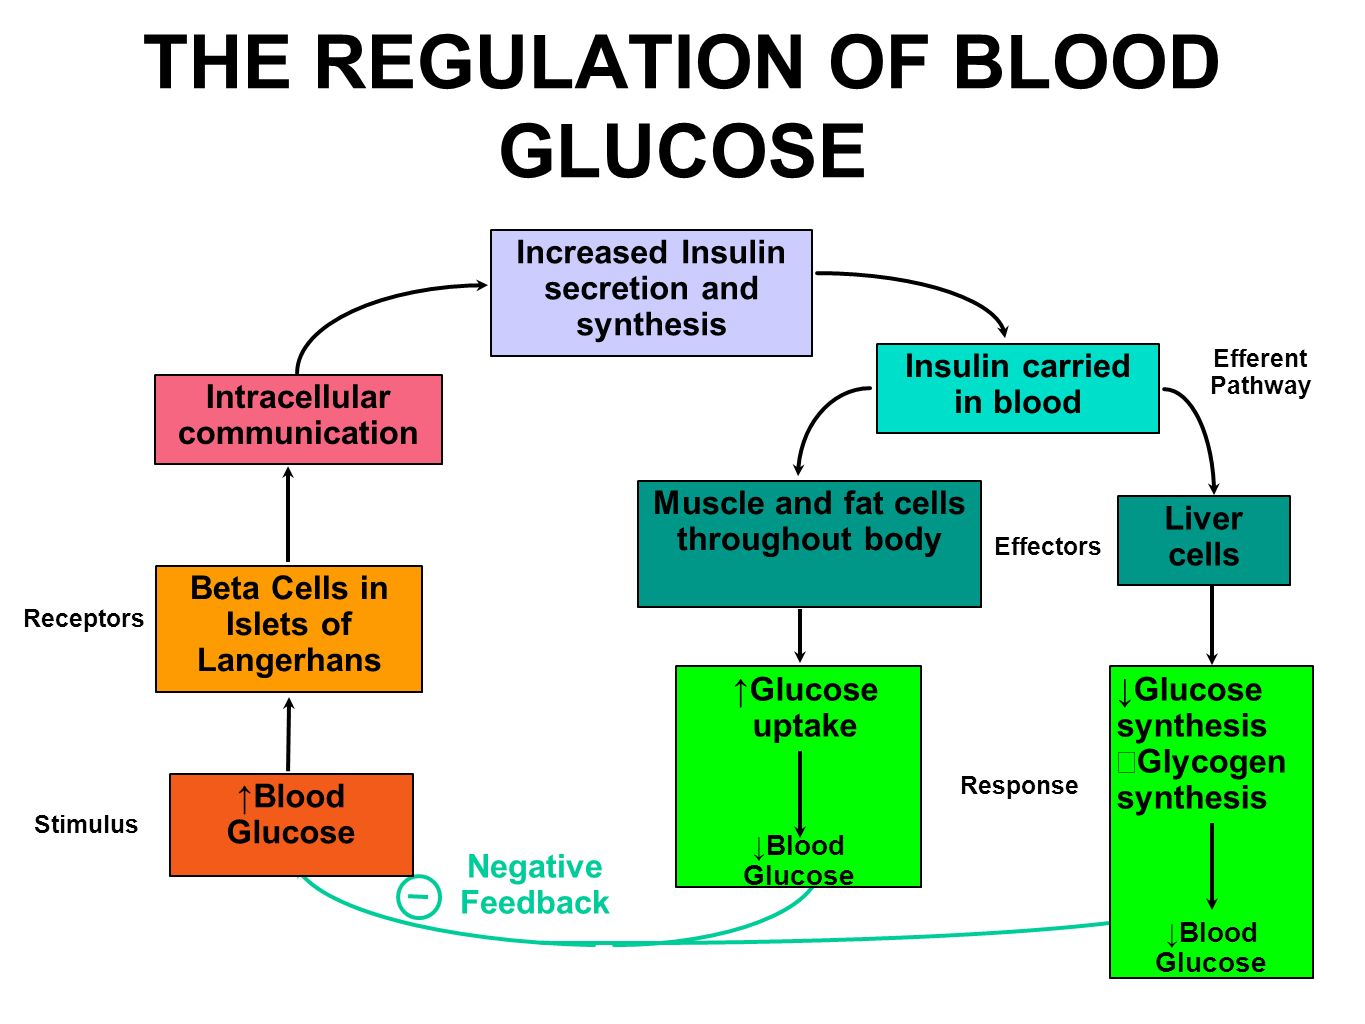 explain hormonal regulation of blood glucose level An endocrine gland is one that secretes hormones directly into the blood exocrine glands are glands that secrete to the outside once blood glucose levels are back to normal, cells start secreting glucagon again and cells stop secreting insulin.